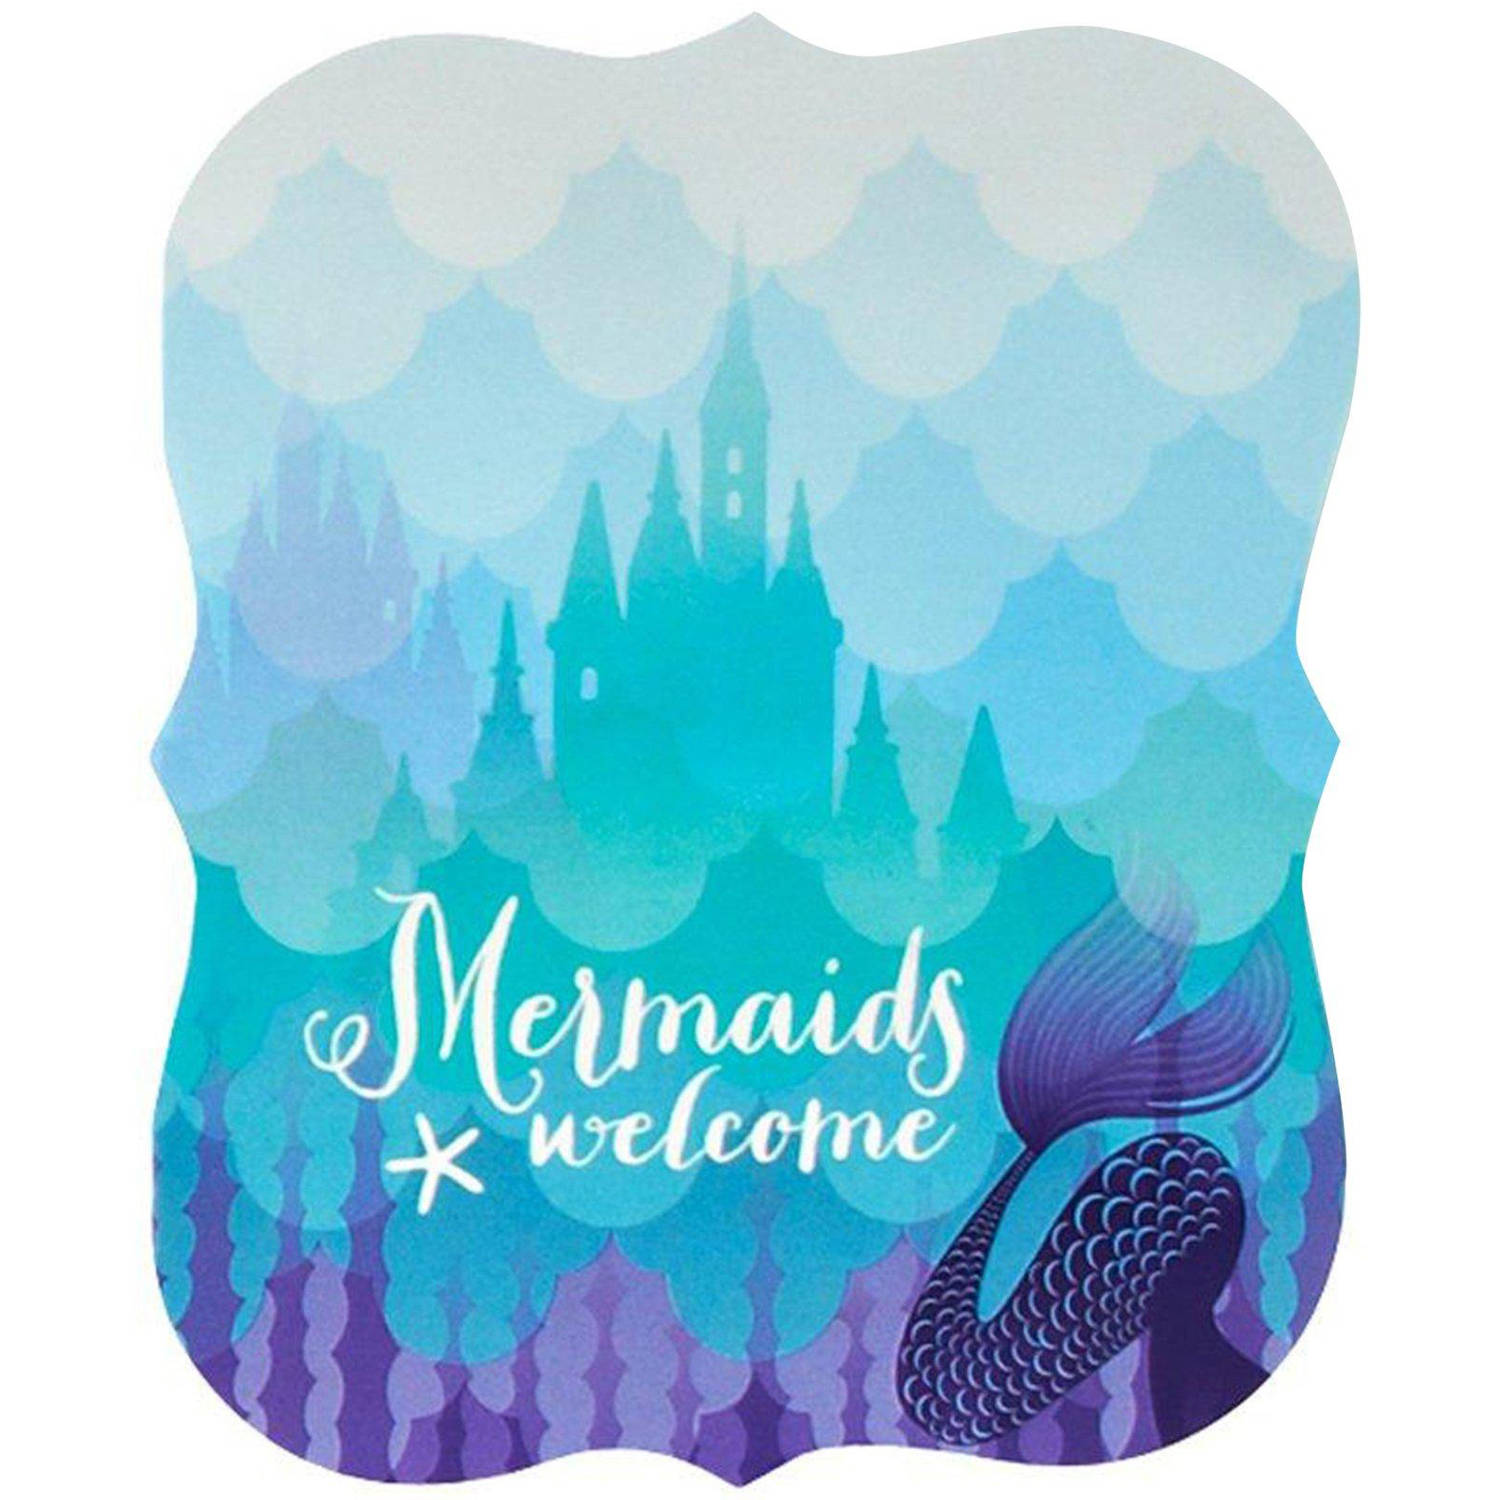 Mermaids Under the Sea Invitations, 8pk - Walmart.com